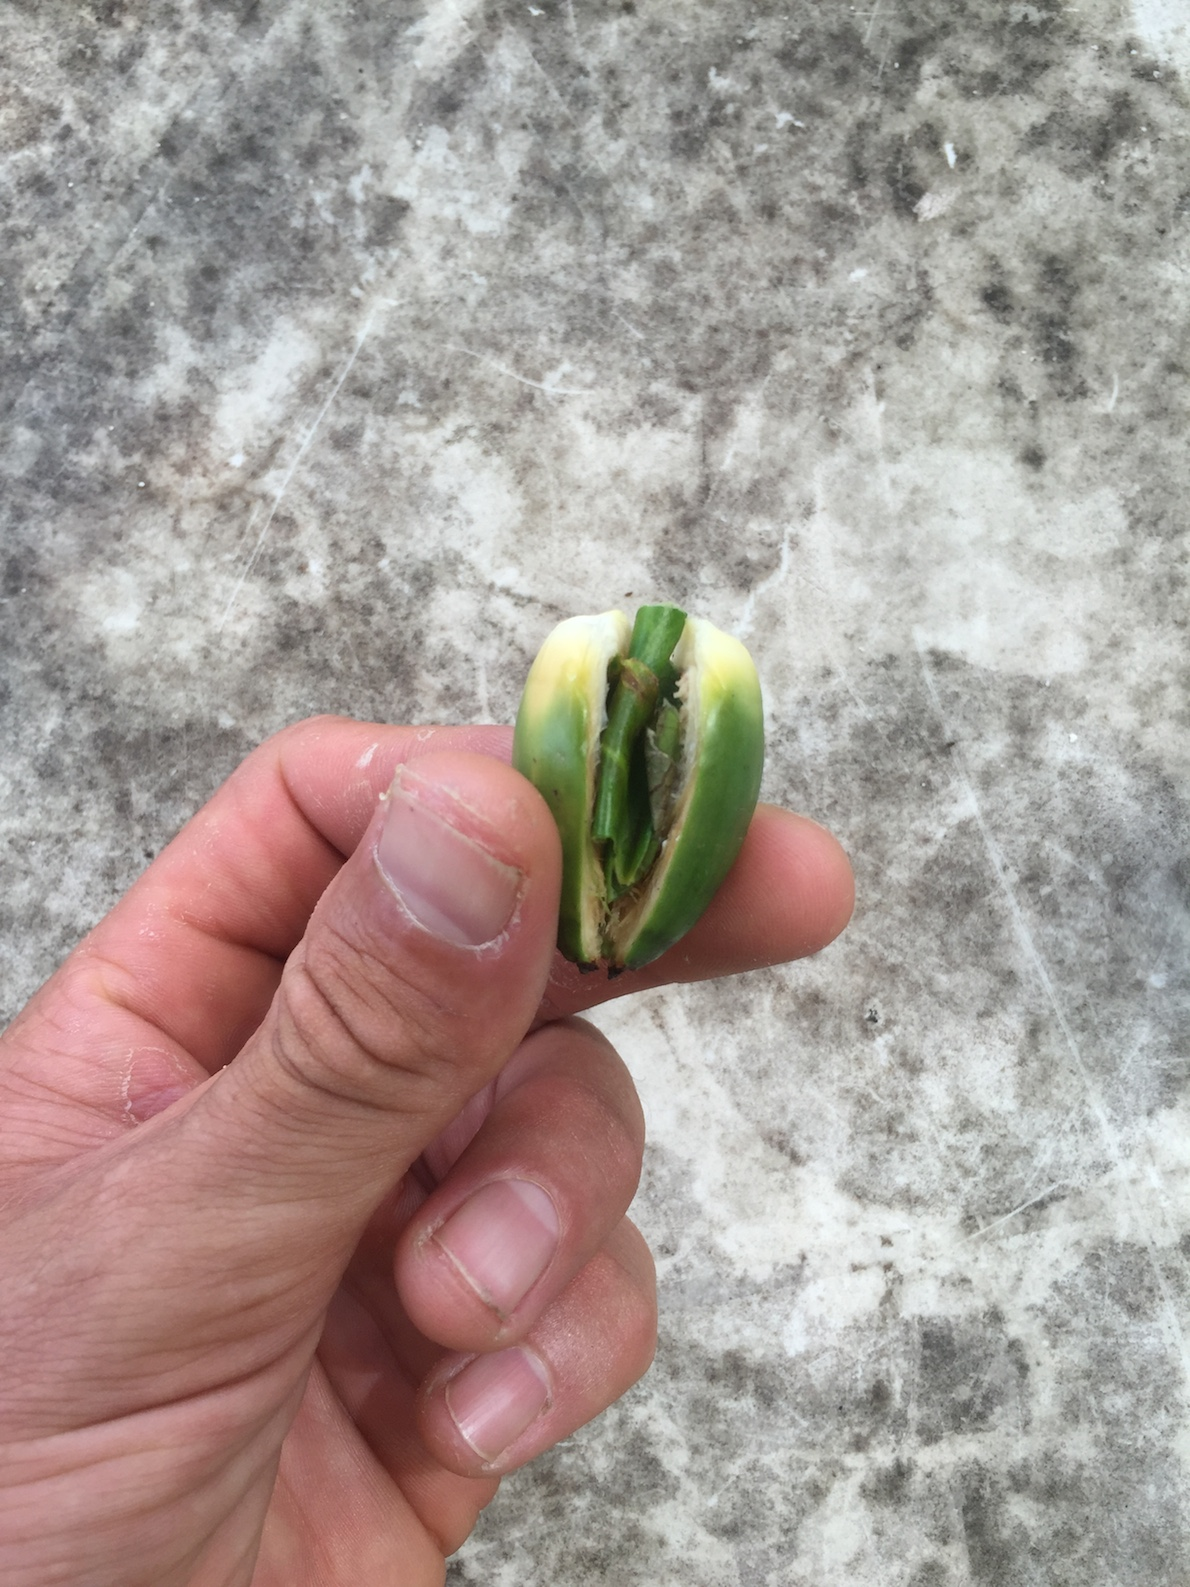 My first betelnut experience. Fresh from the tree where I paddled to Dolce.